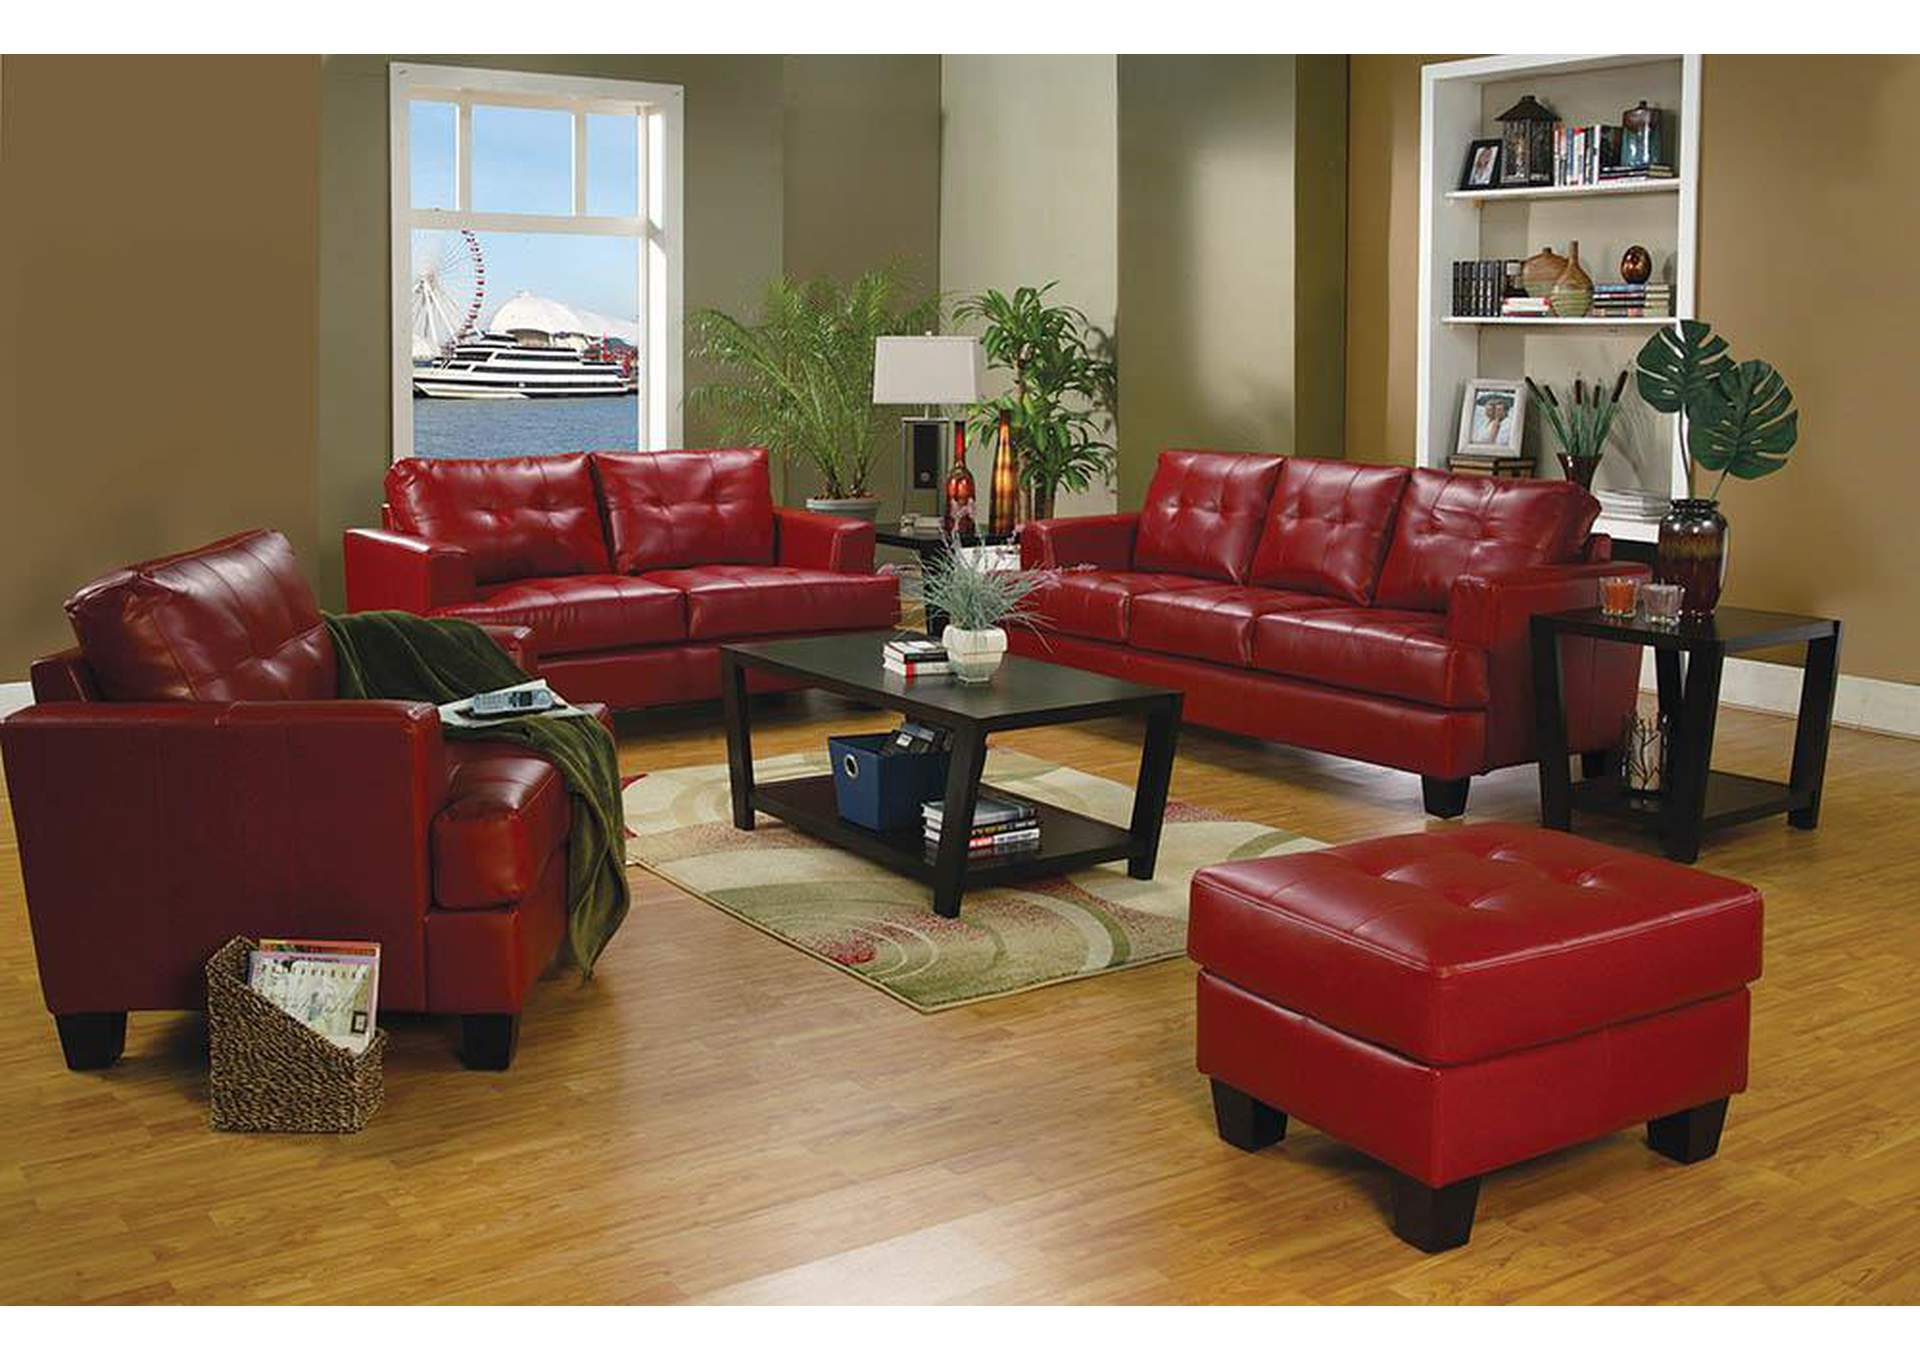 The Home Warehouse | Ocean, NJ Samuel Red Bonded Leather Sofa